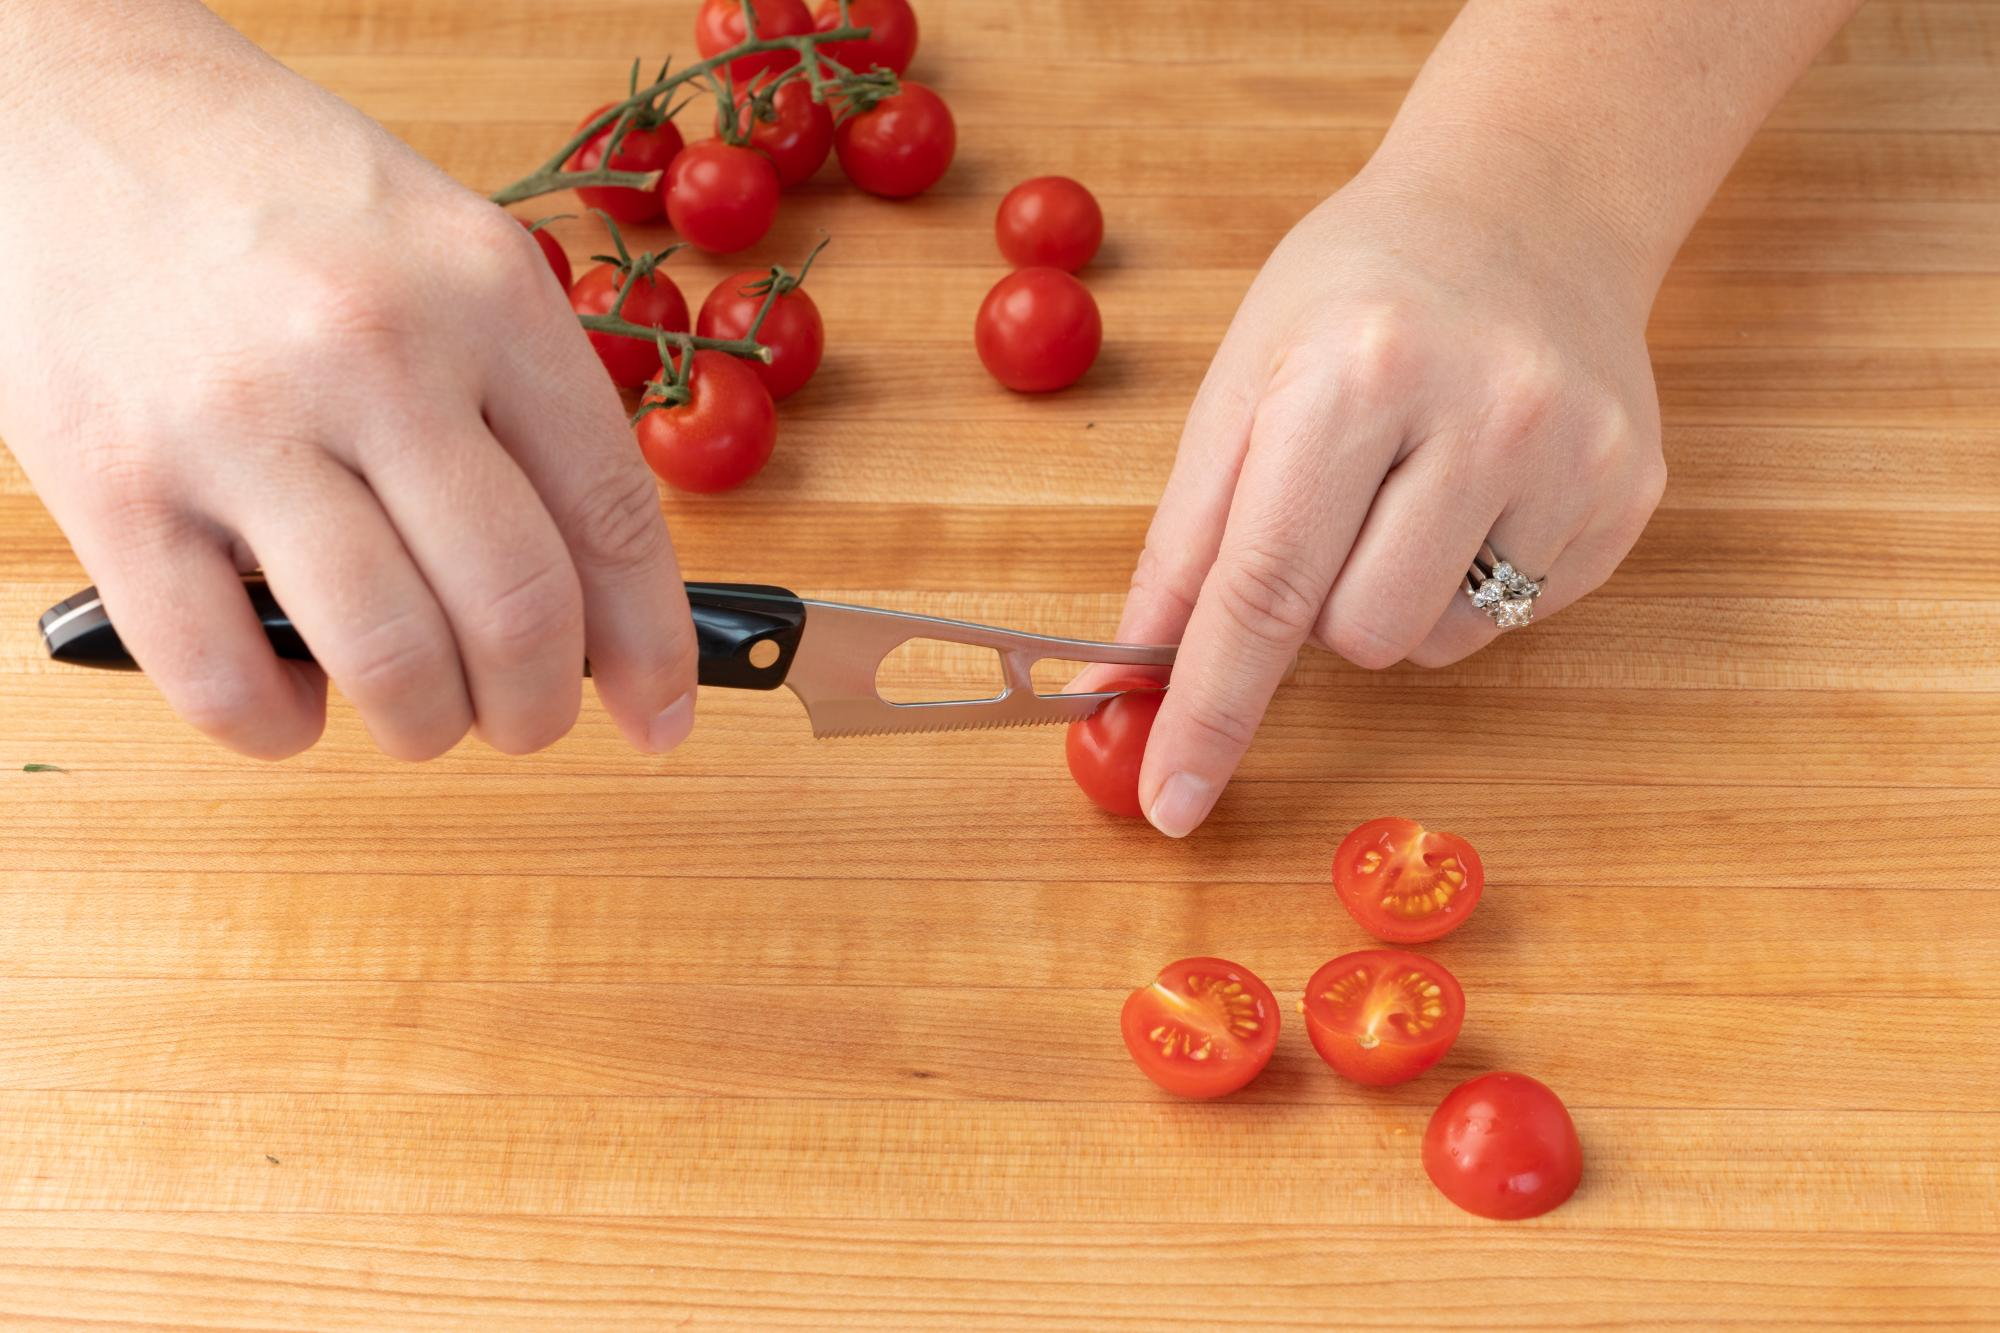 Using the Mini Cheese Knife to slice the tomatoes in half.